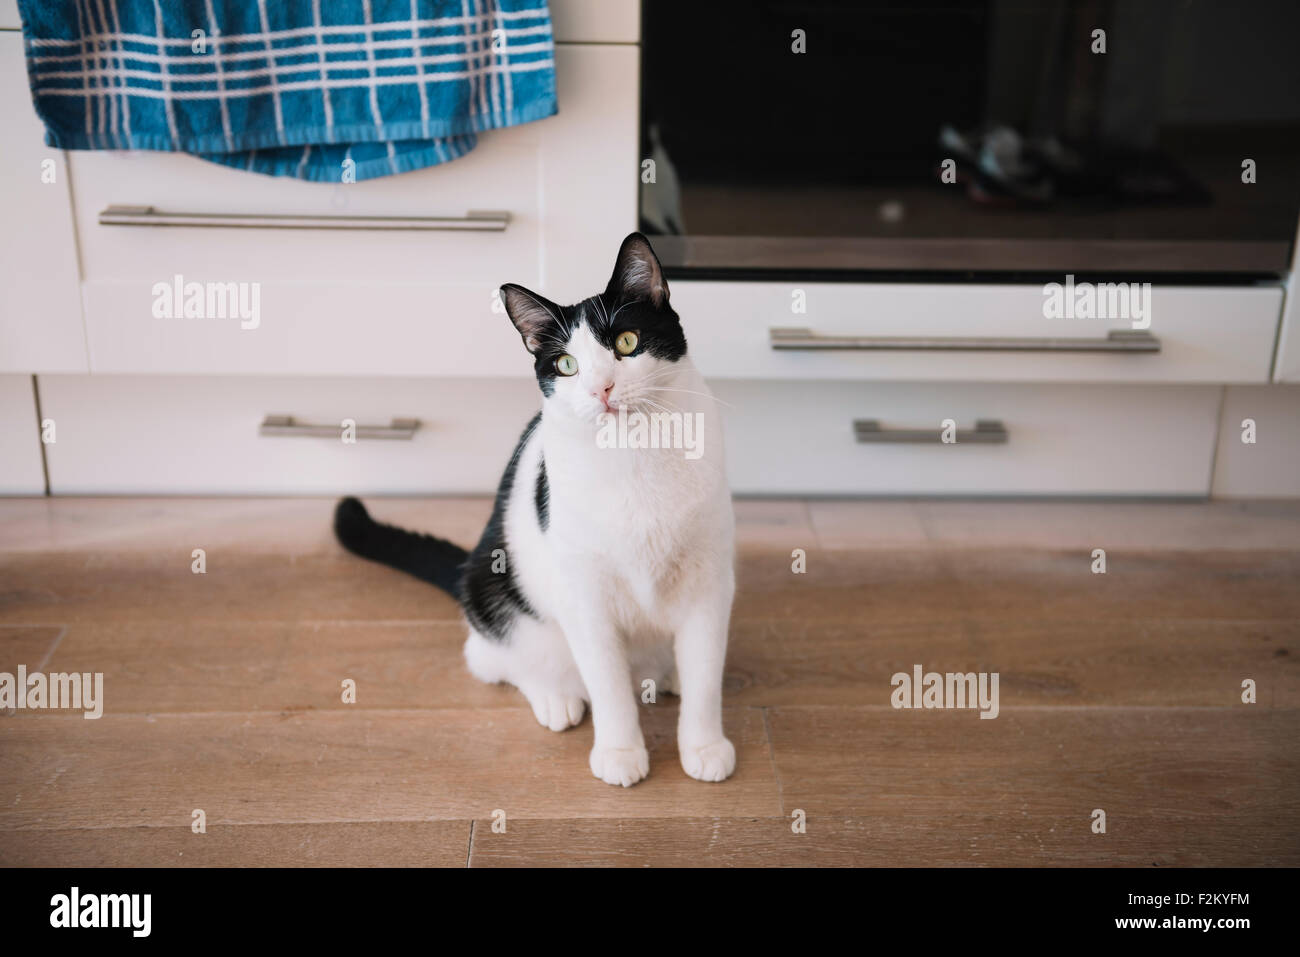 Black and white cat sitting on the kitchen floor waiting for food Stock Photo